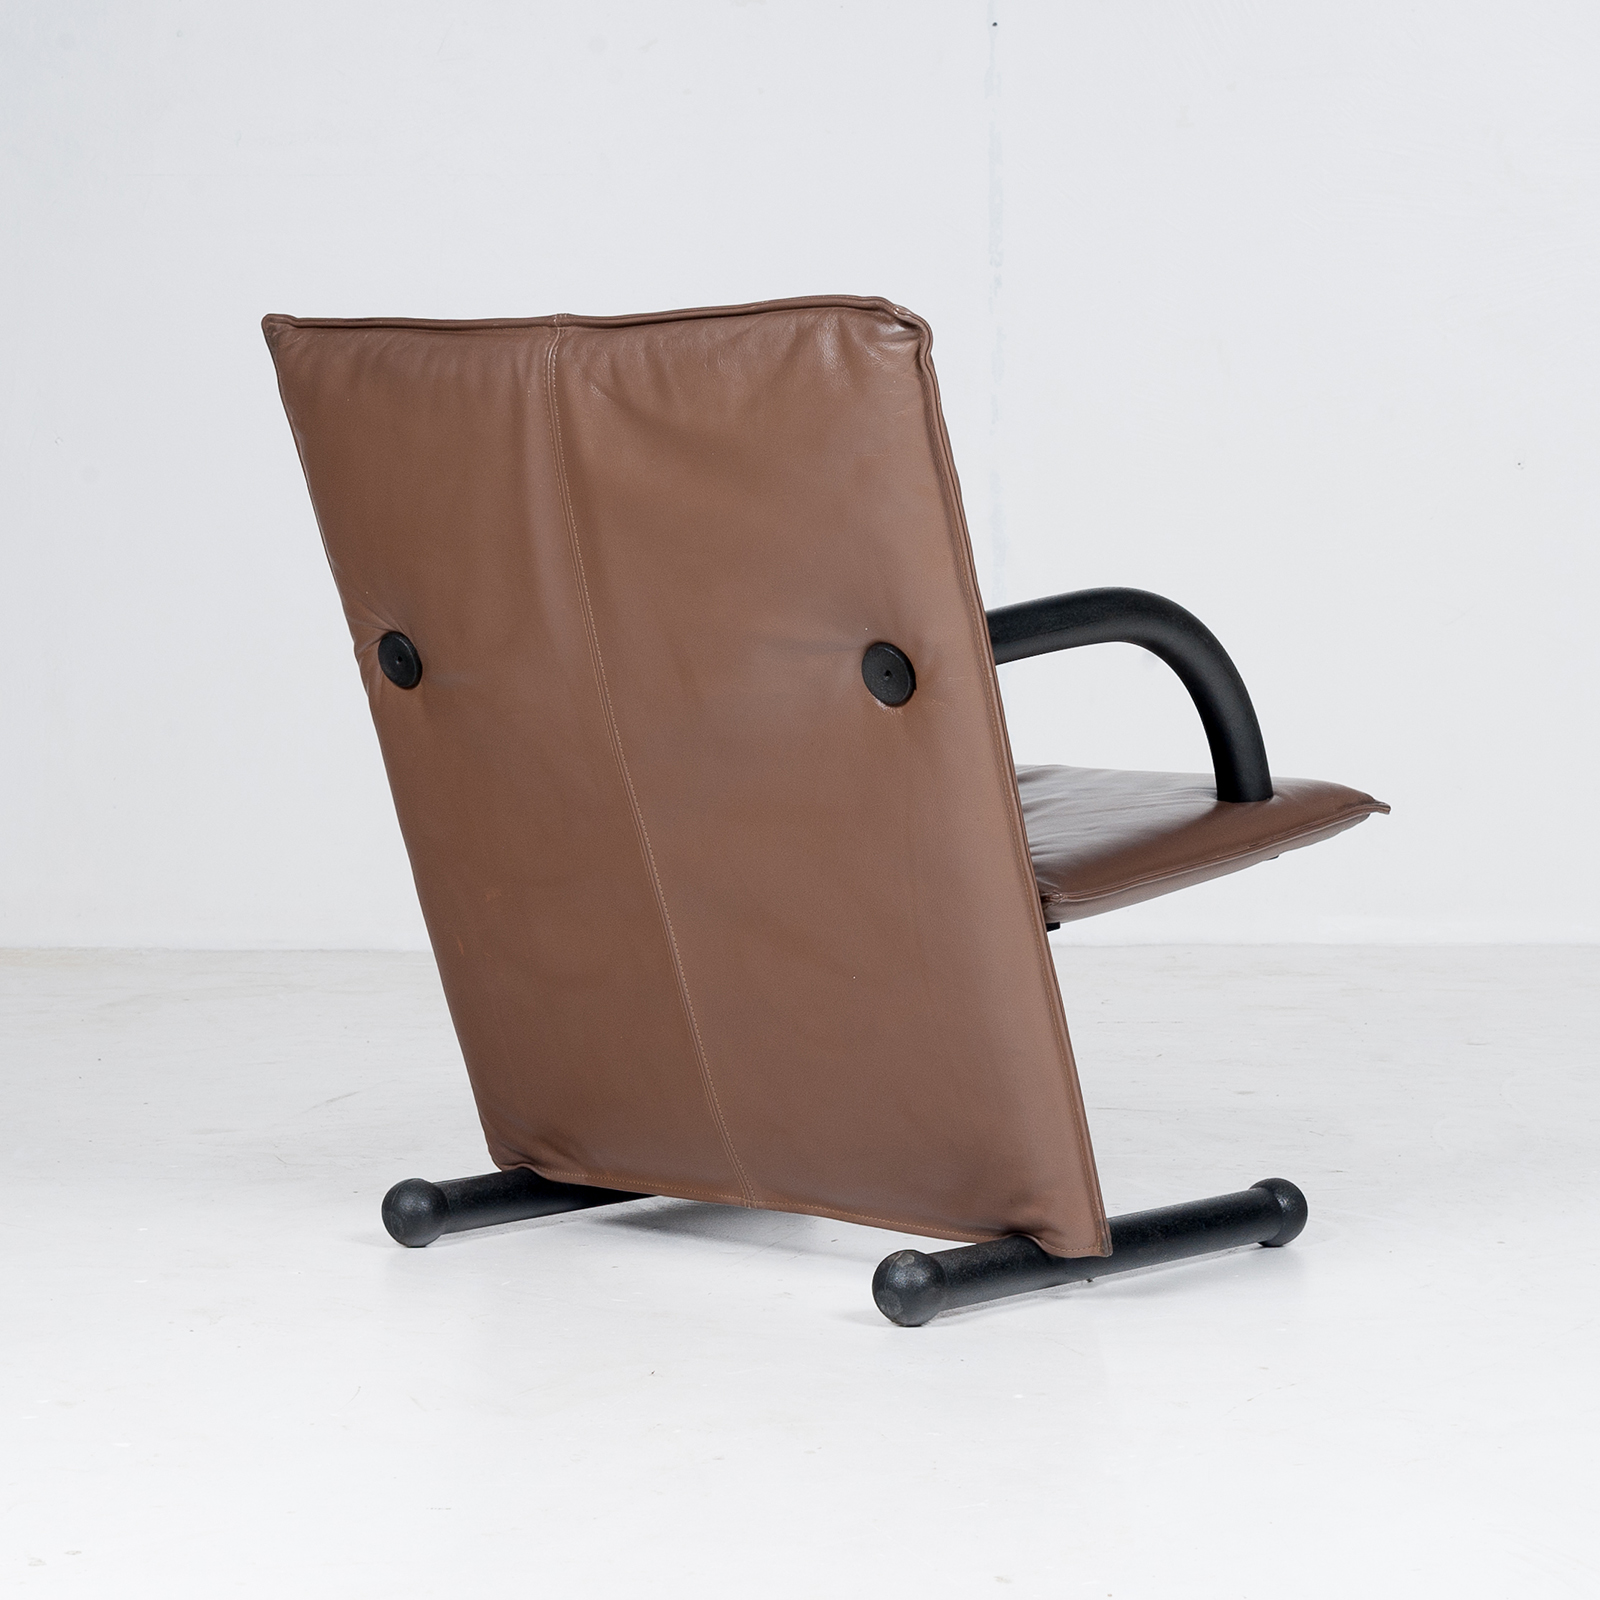 Model T Line Chair In By Burkhard Vogtherr For Arflex In Brown Leather, 1980s, Italy71